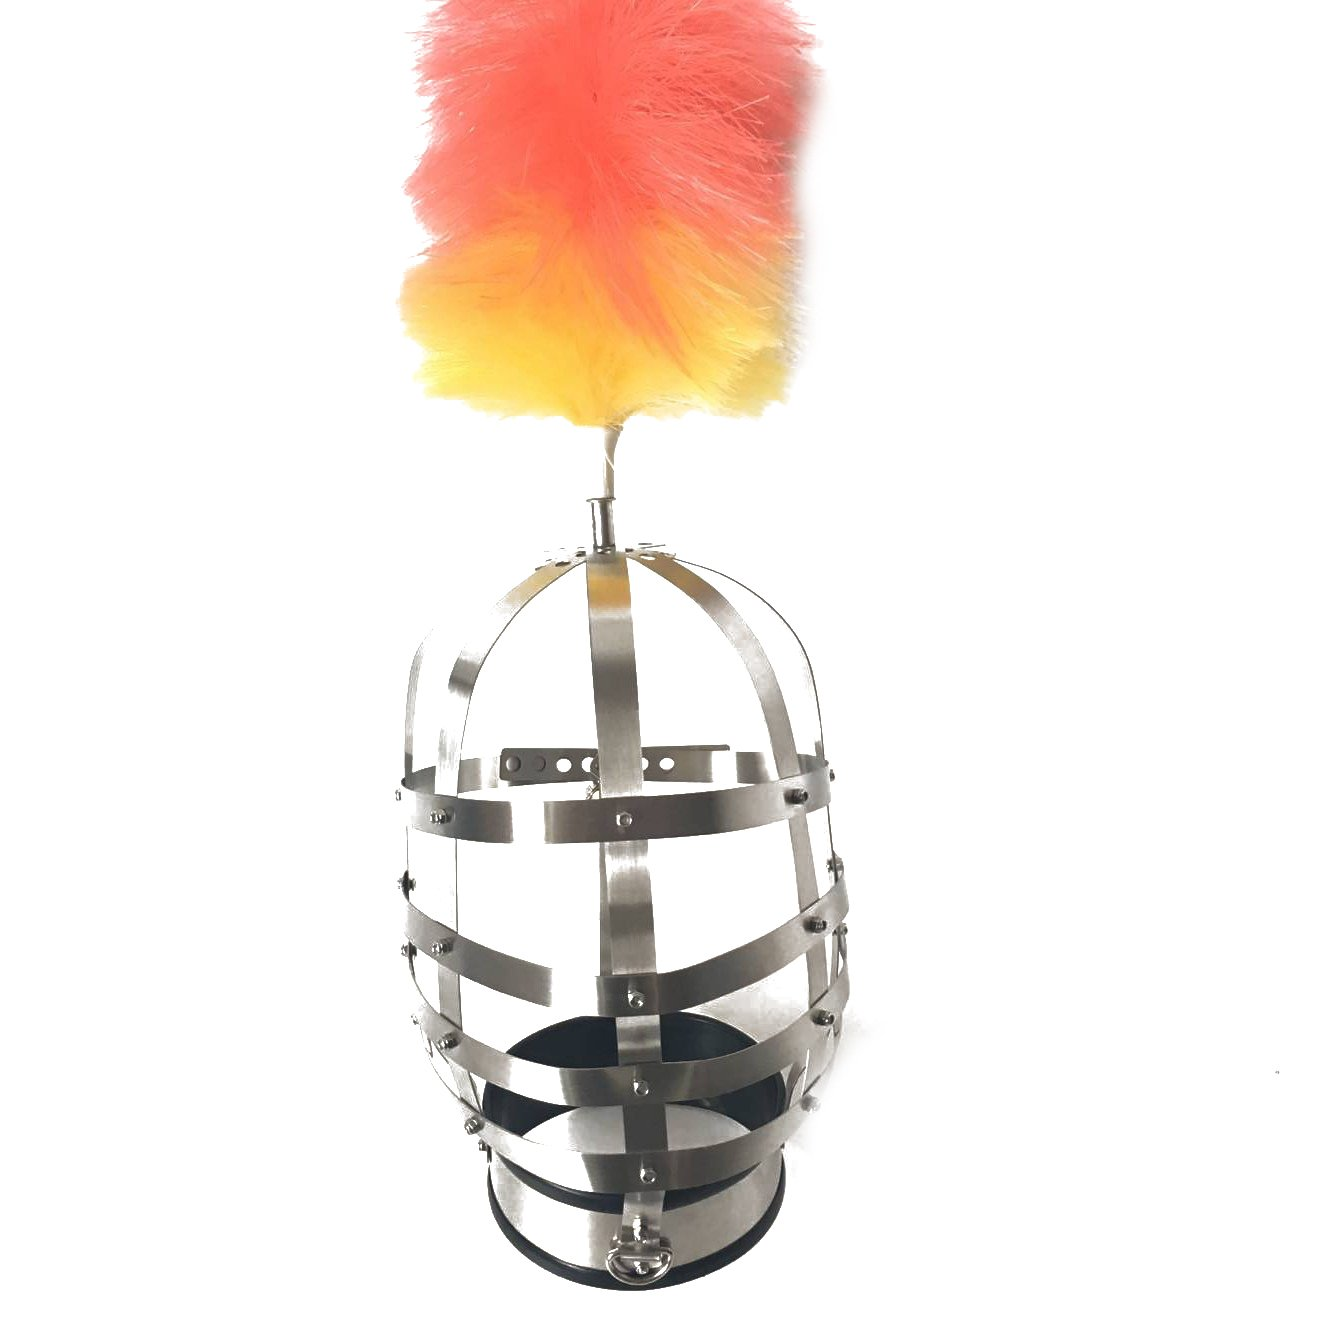 Duzzy Costume Gimp Mask Hood Couple Flirting Toys Style Style Stainless Neck Collar with Lock Head Cage Helmet with Feather Bondage Headgear Novelty